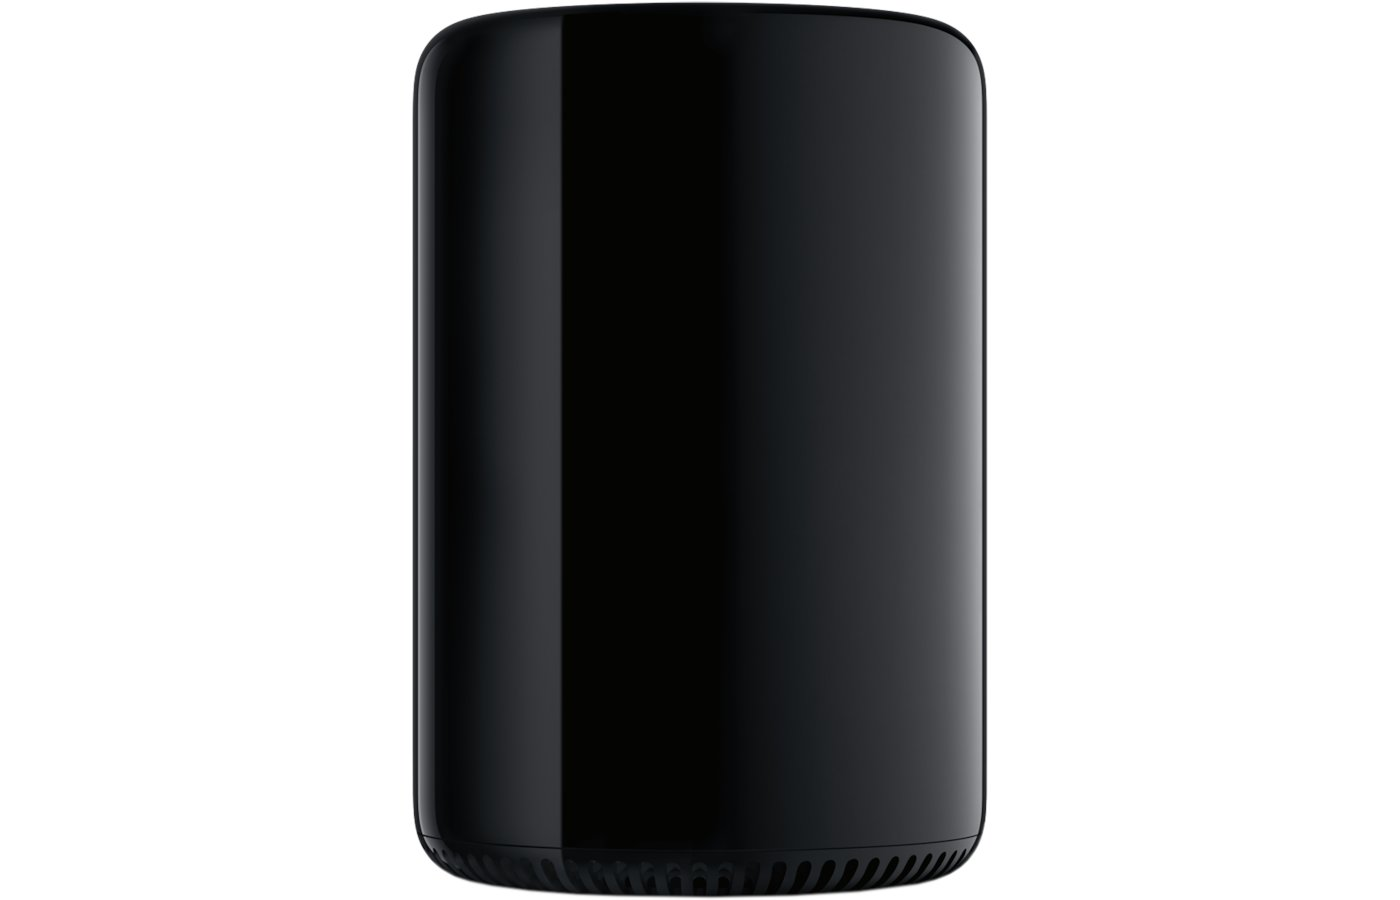 Системный блок Apple Mac Pro /ME253RU/A/